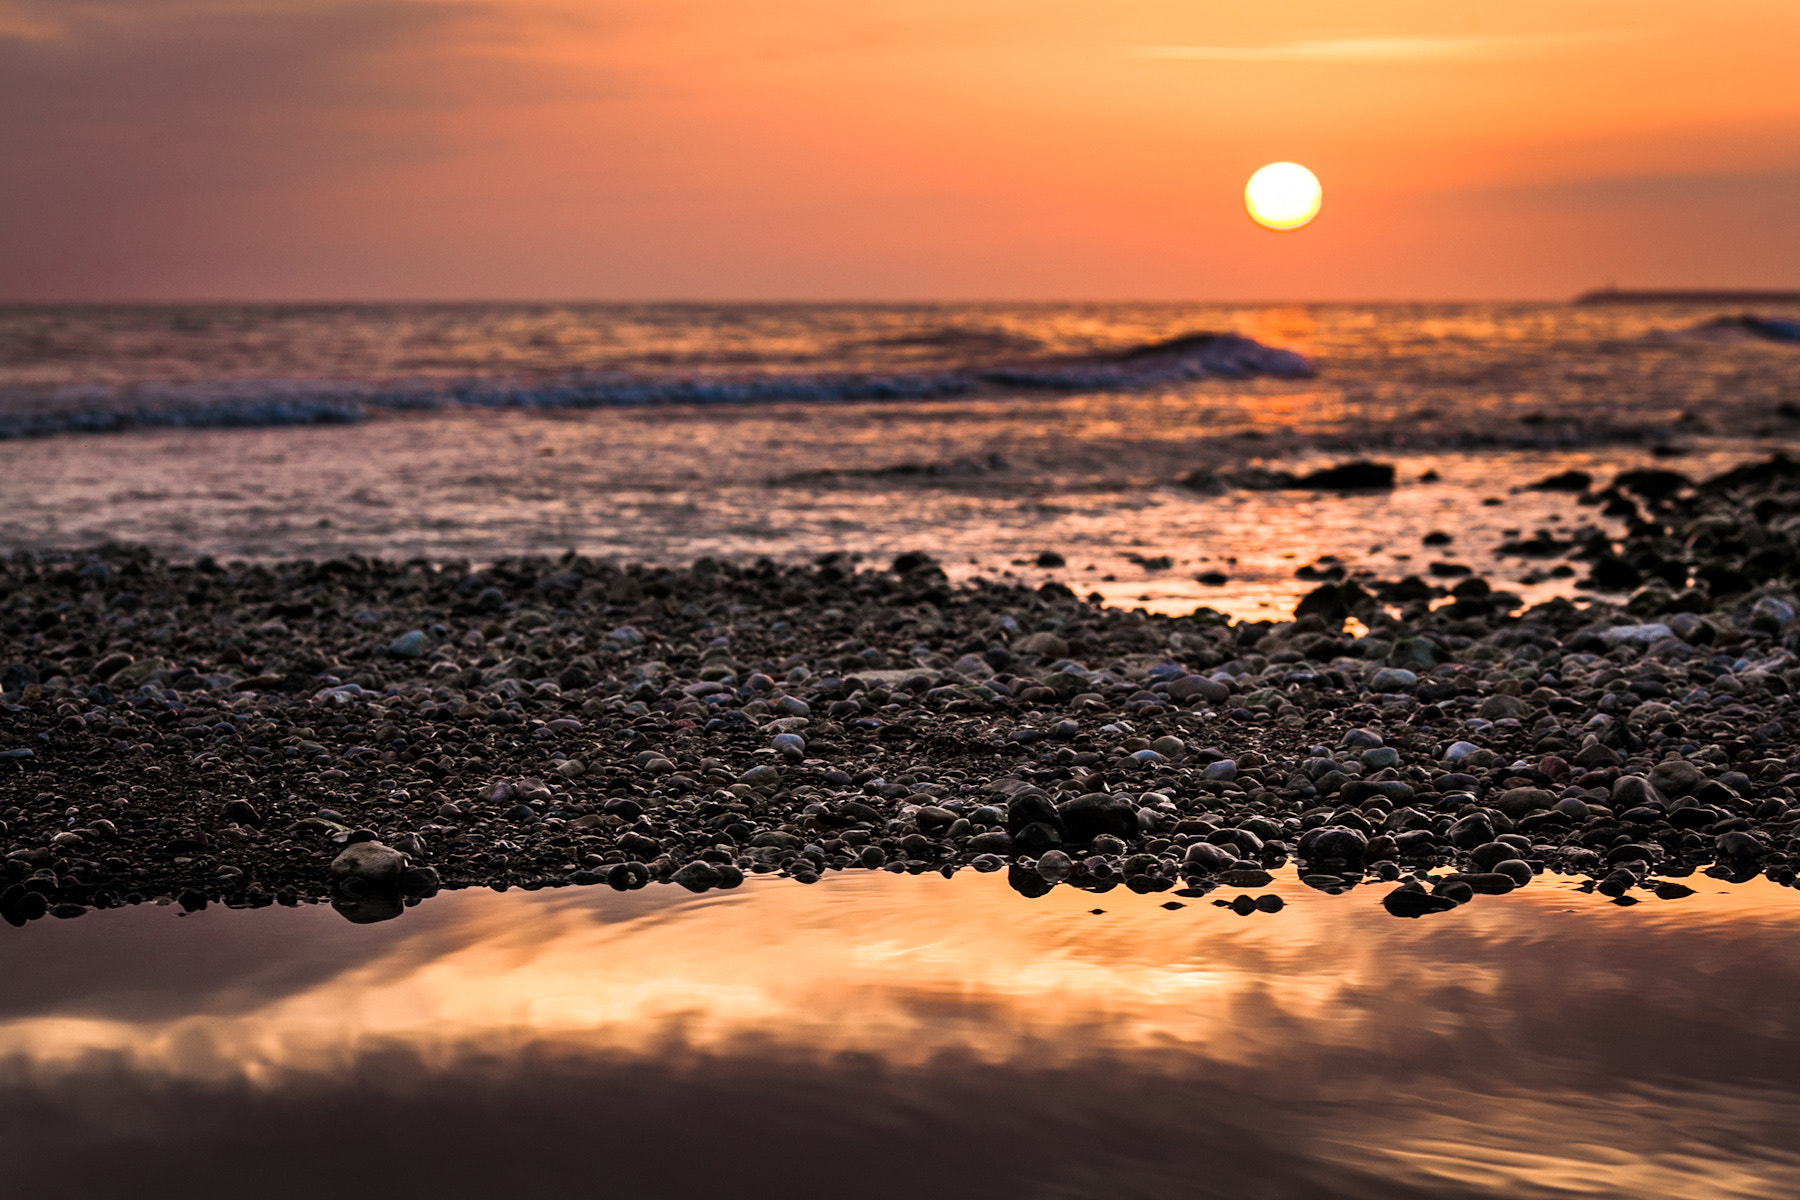 Photograph Sitges Sunset by Roger Uceda Molera on 500px